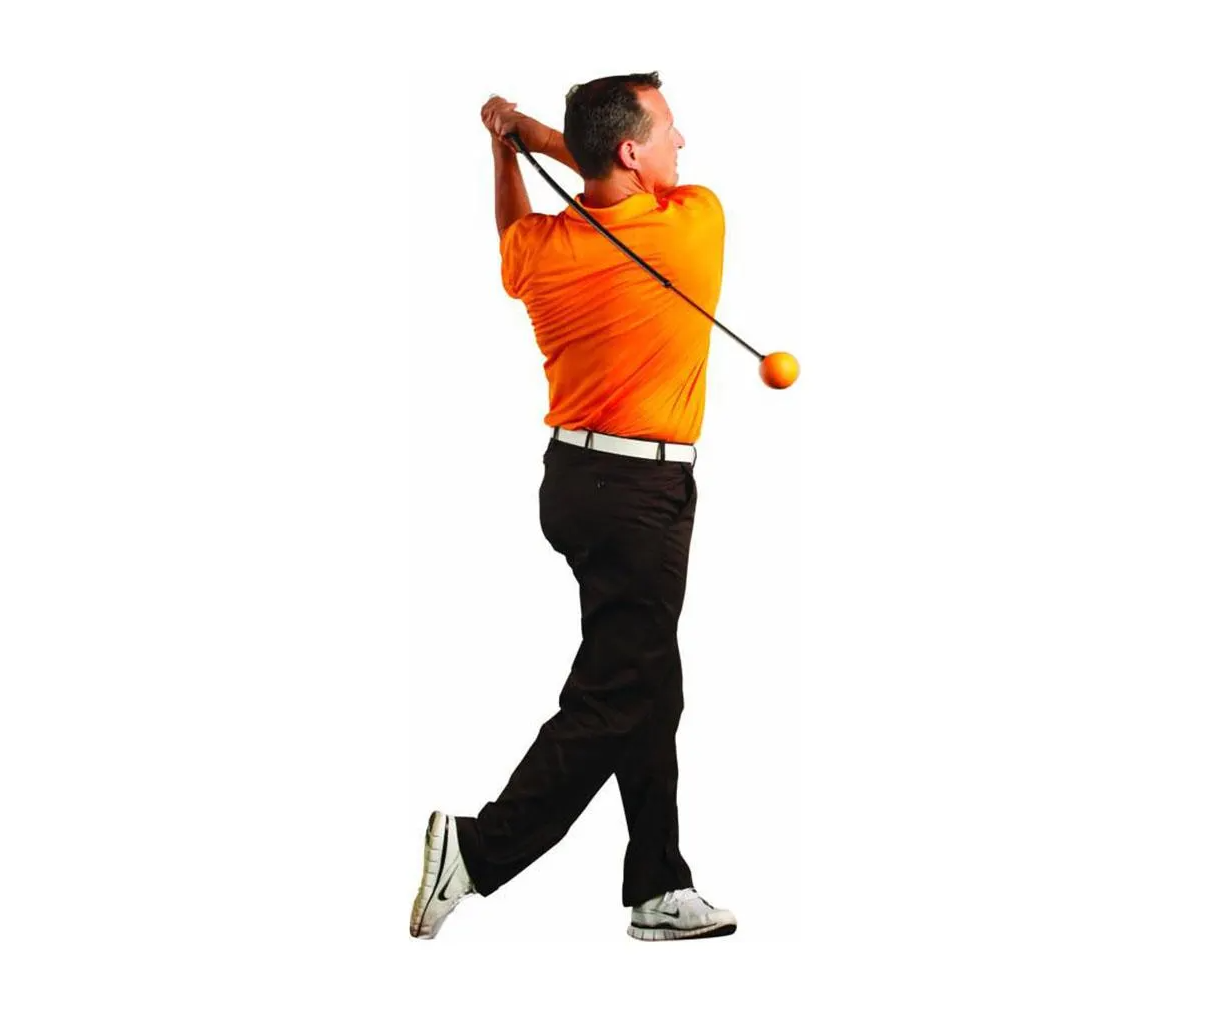 Golfer finishing practice swing with the Orange Whip trainer